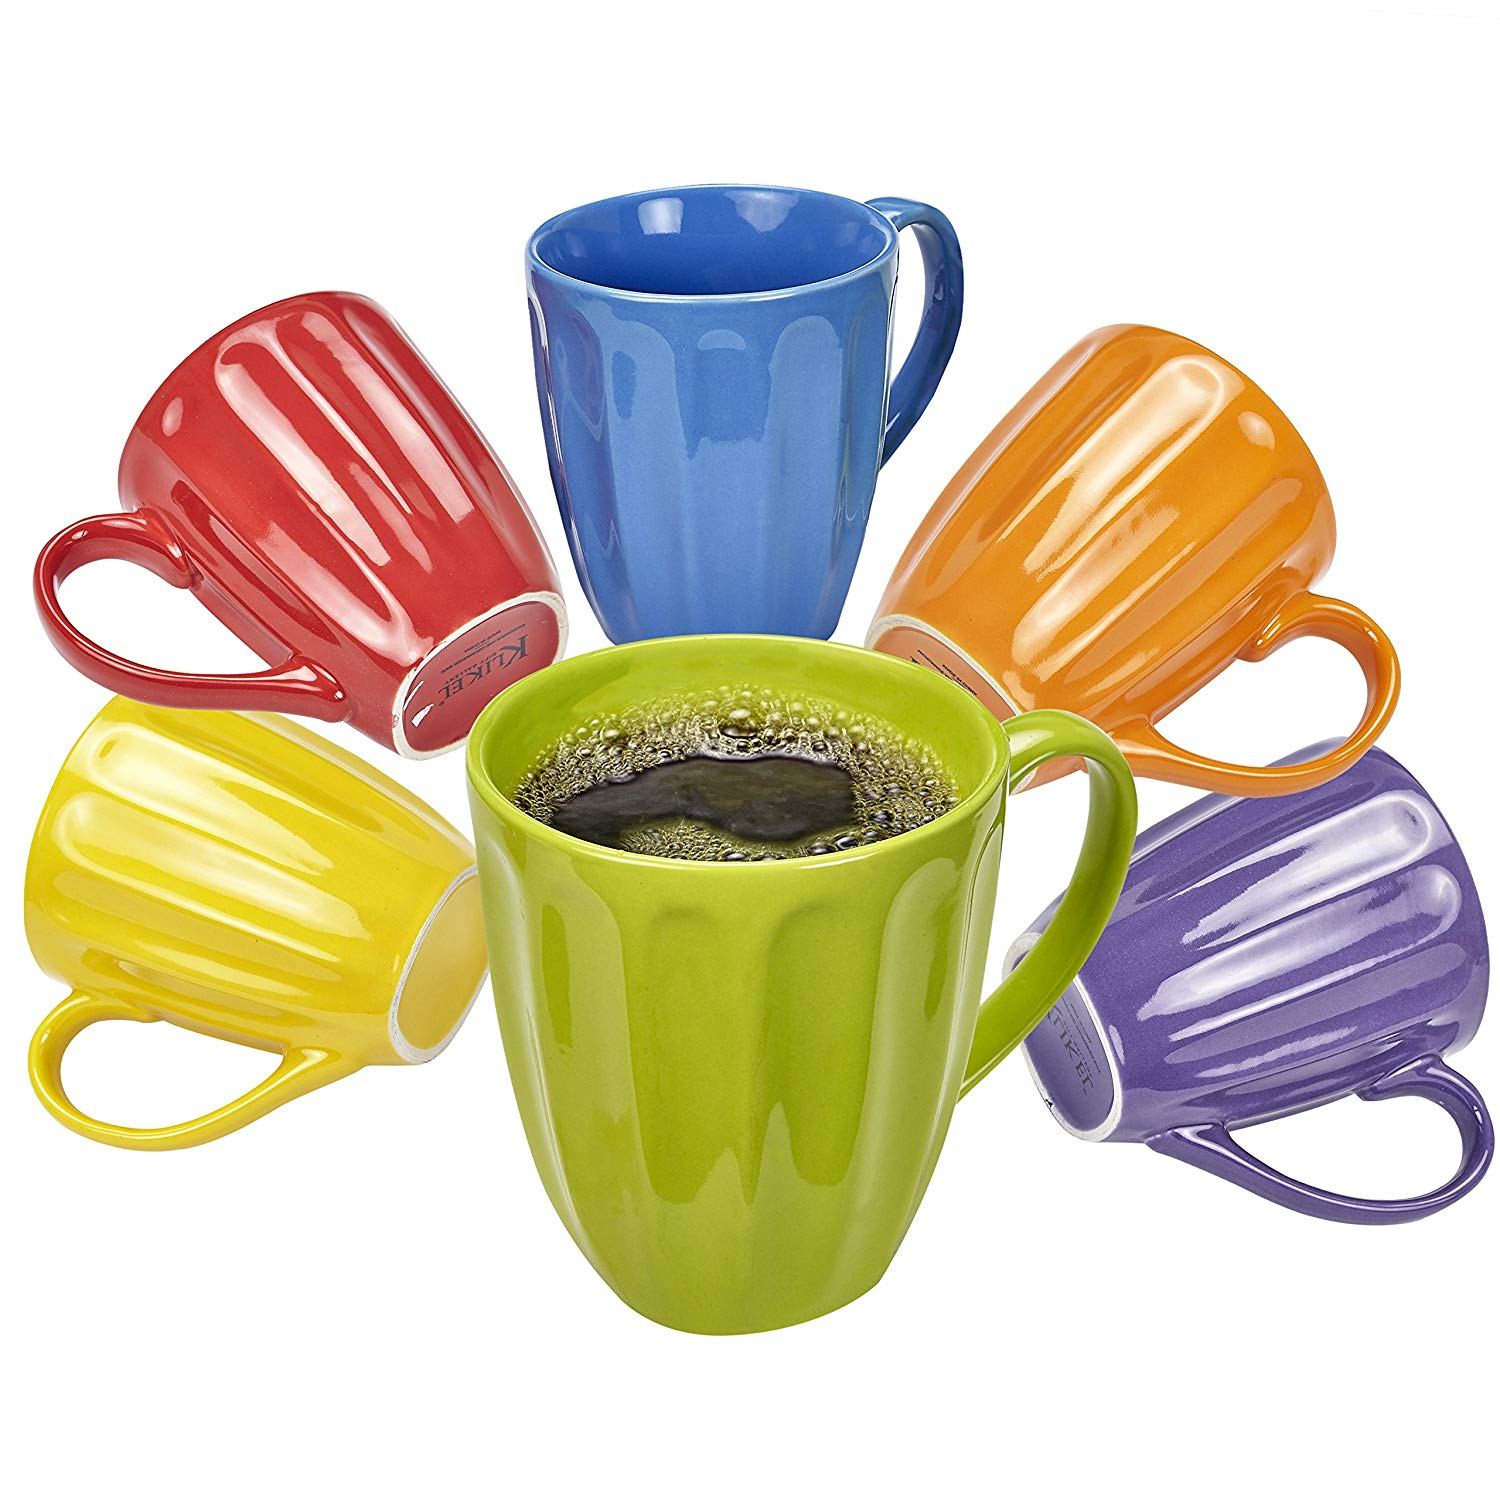 Top 10 Best Coffee Mug Sets Reviews Buying Guide 1